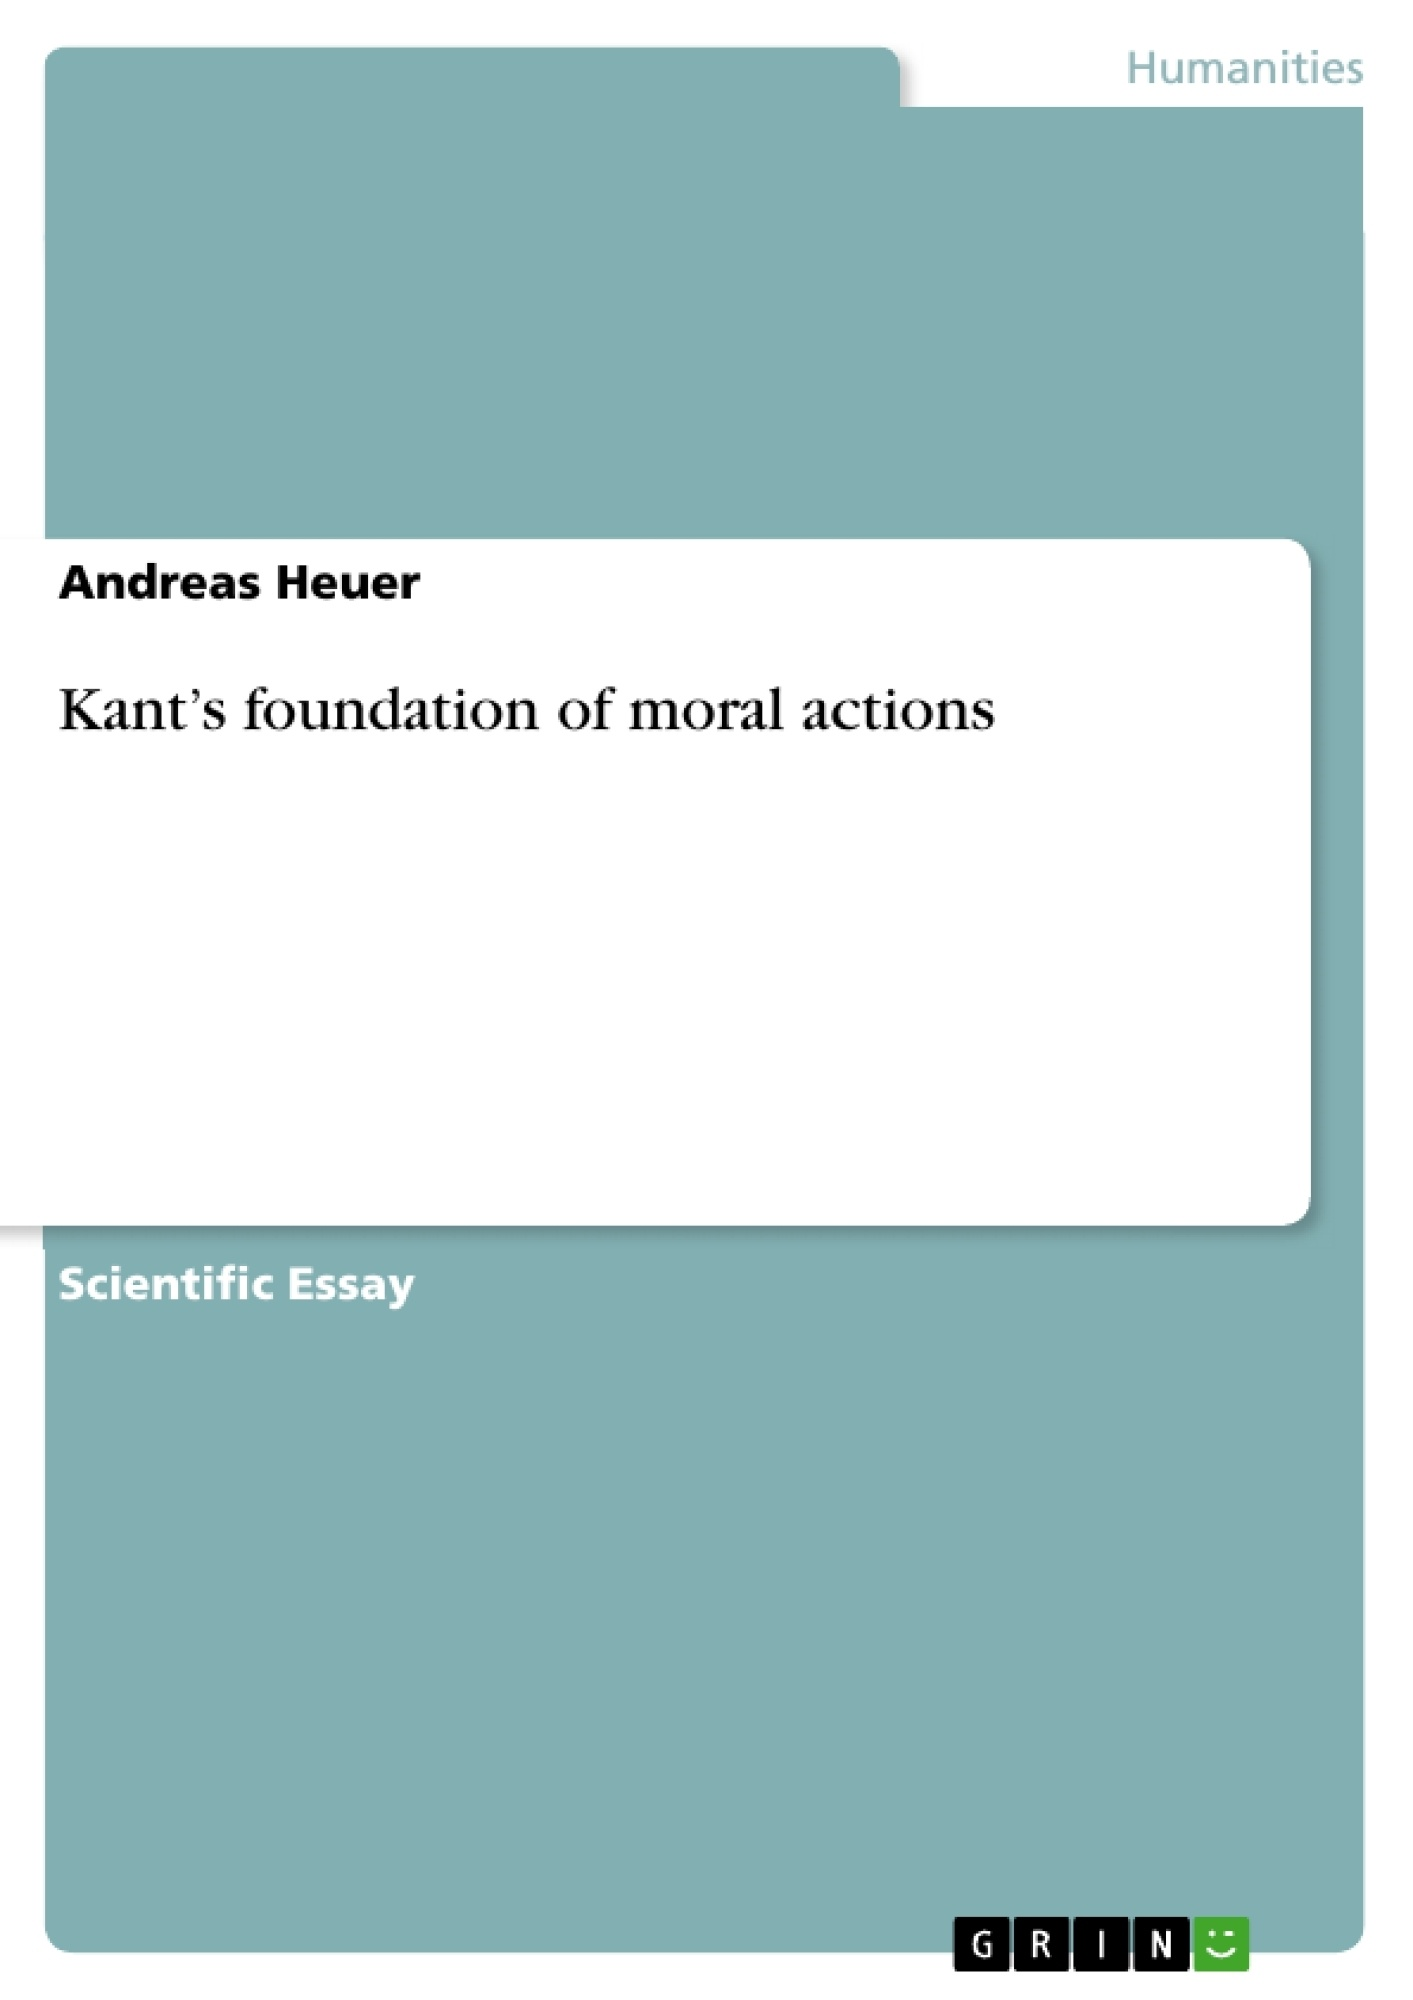 Title: Kant's foundation of moral actions